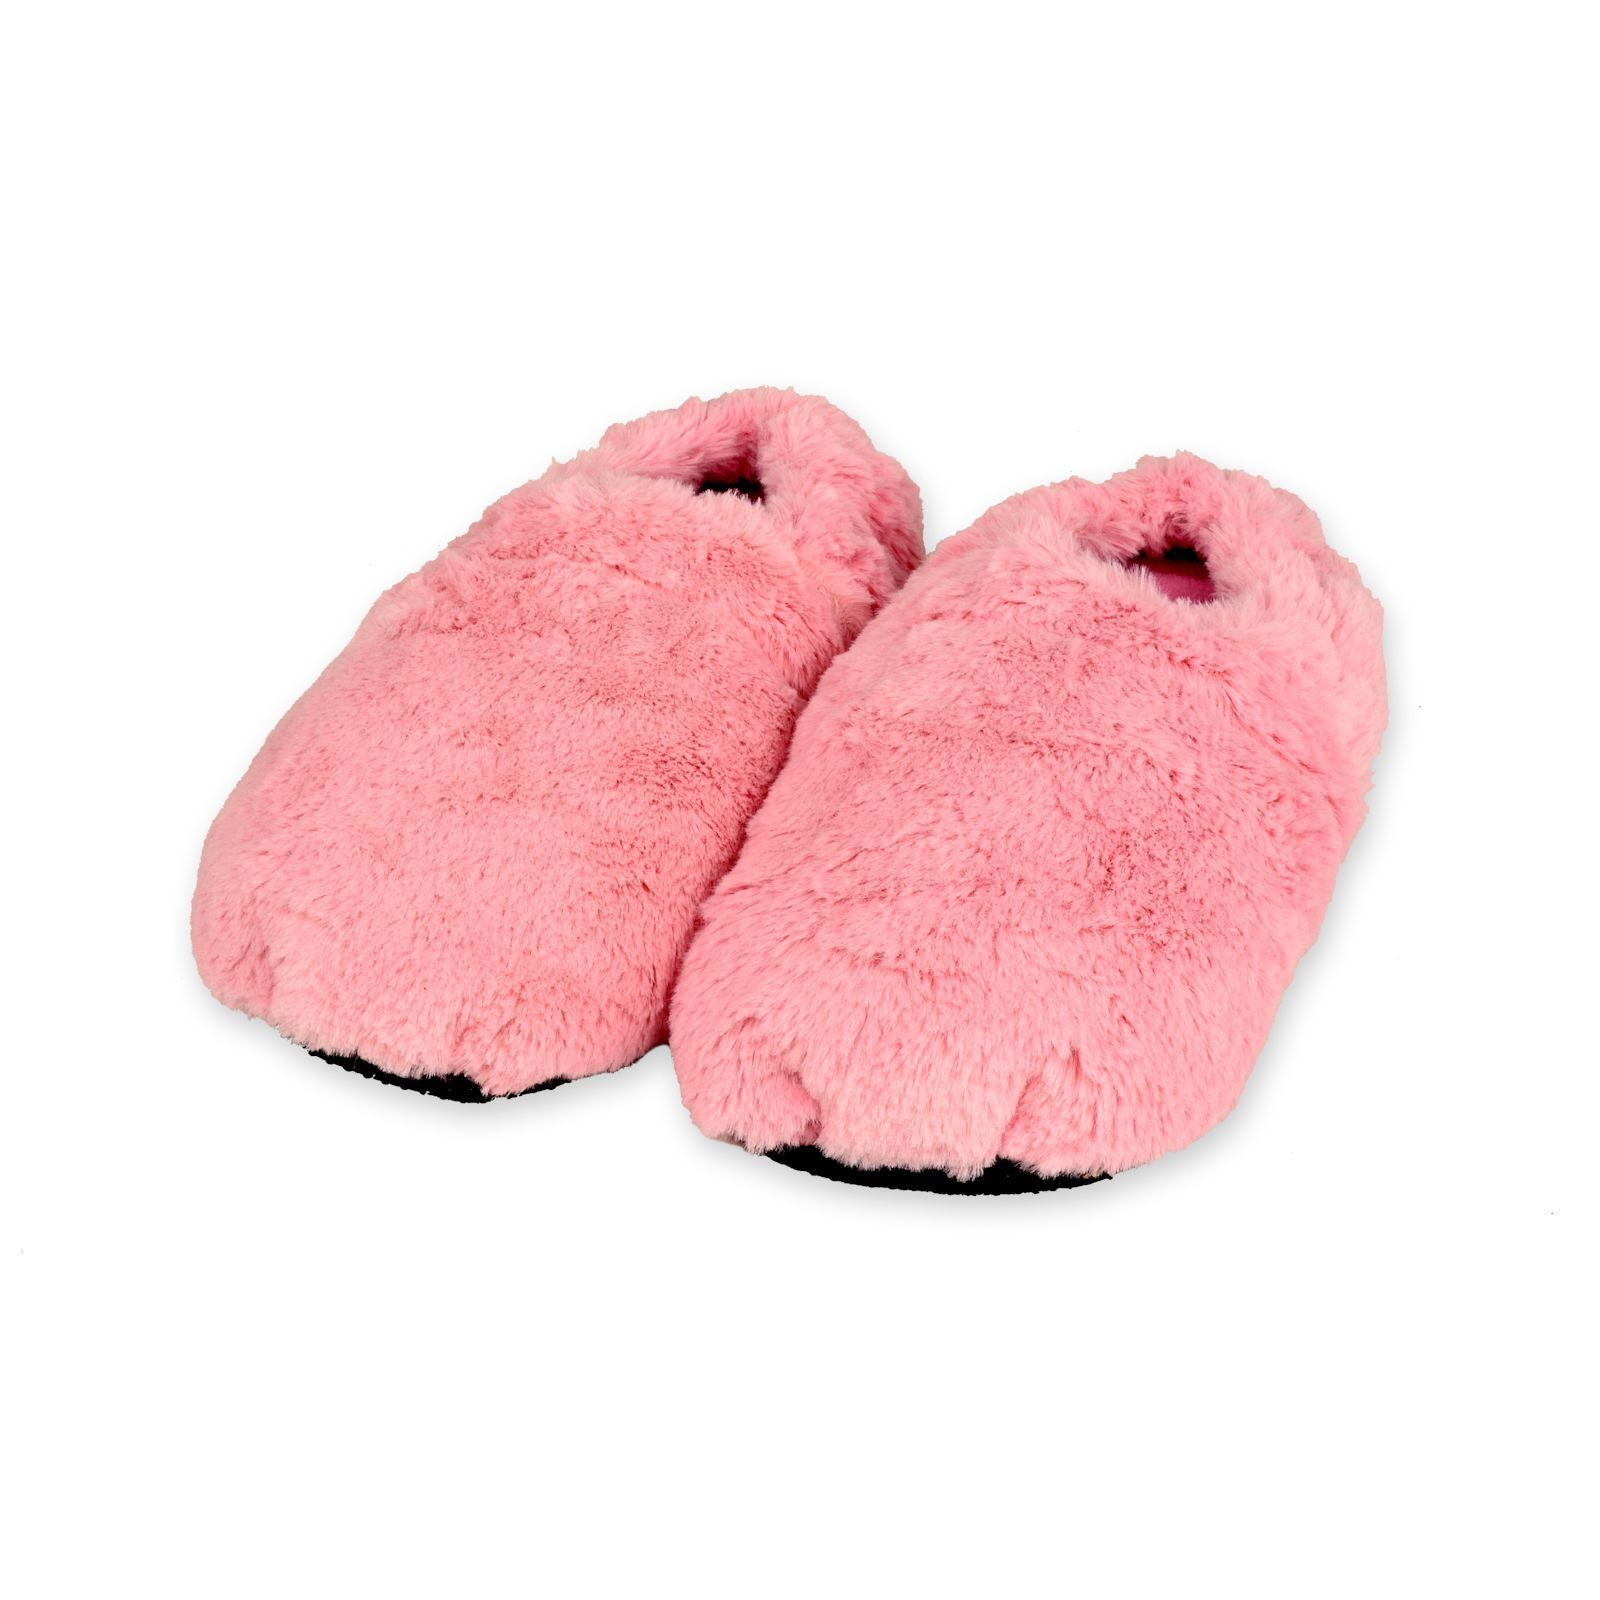 Details About Zhu Soft Plush Microwave Heated Slippers Wheat Bag Feet Warmers Microwavable